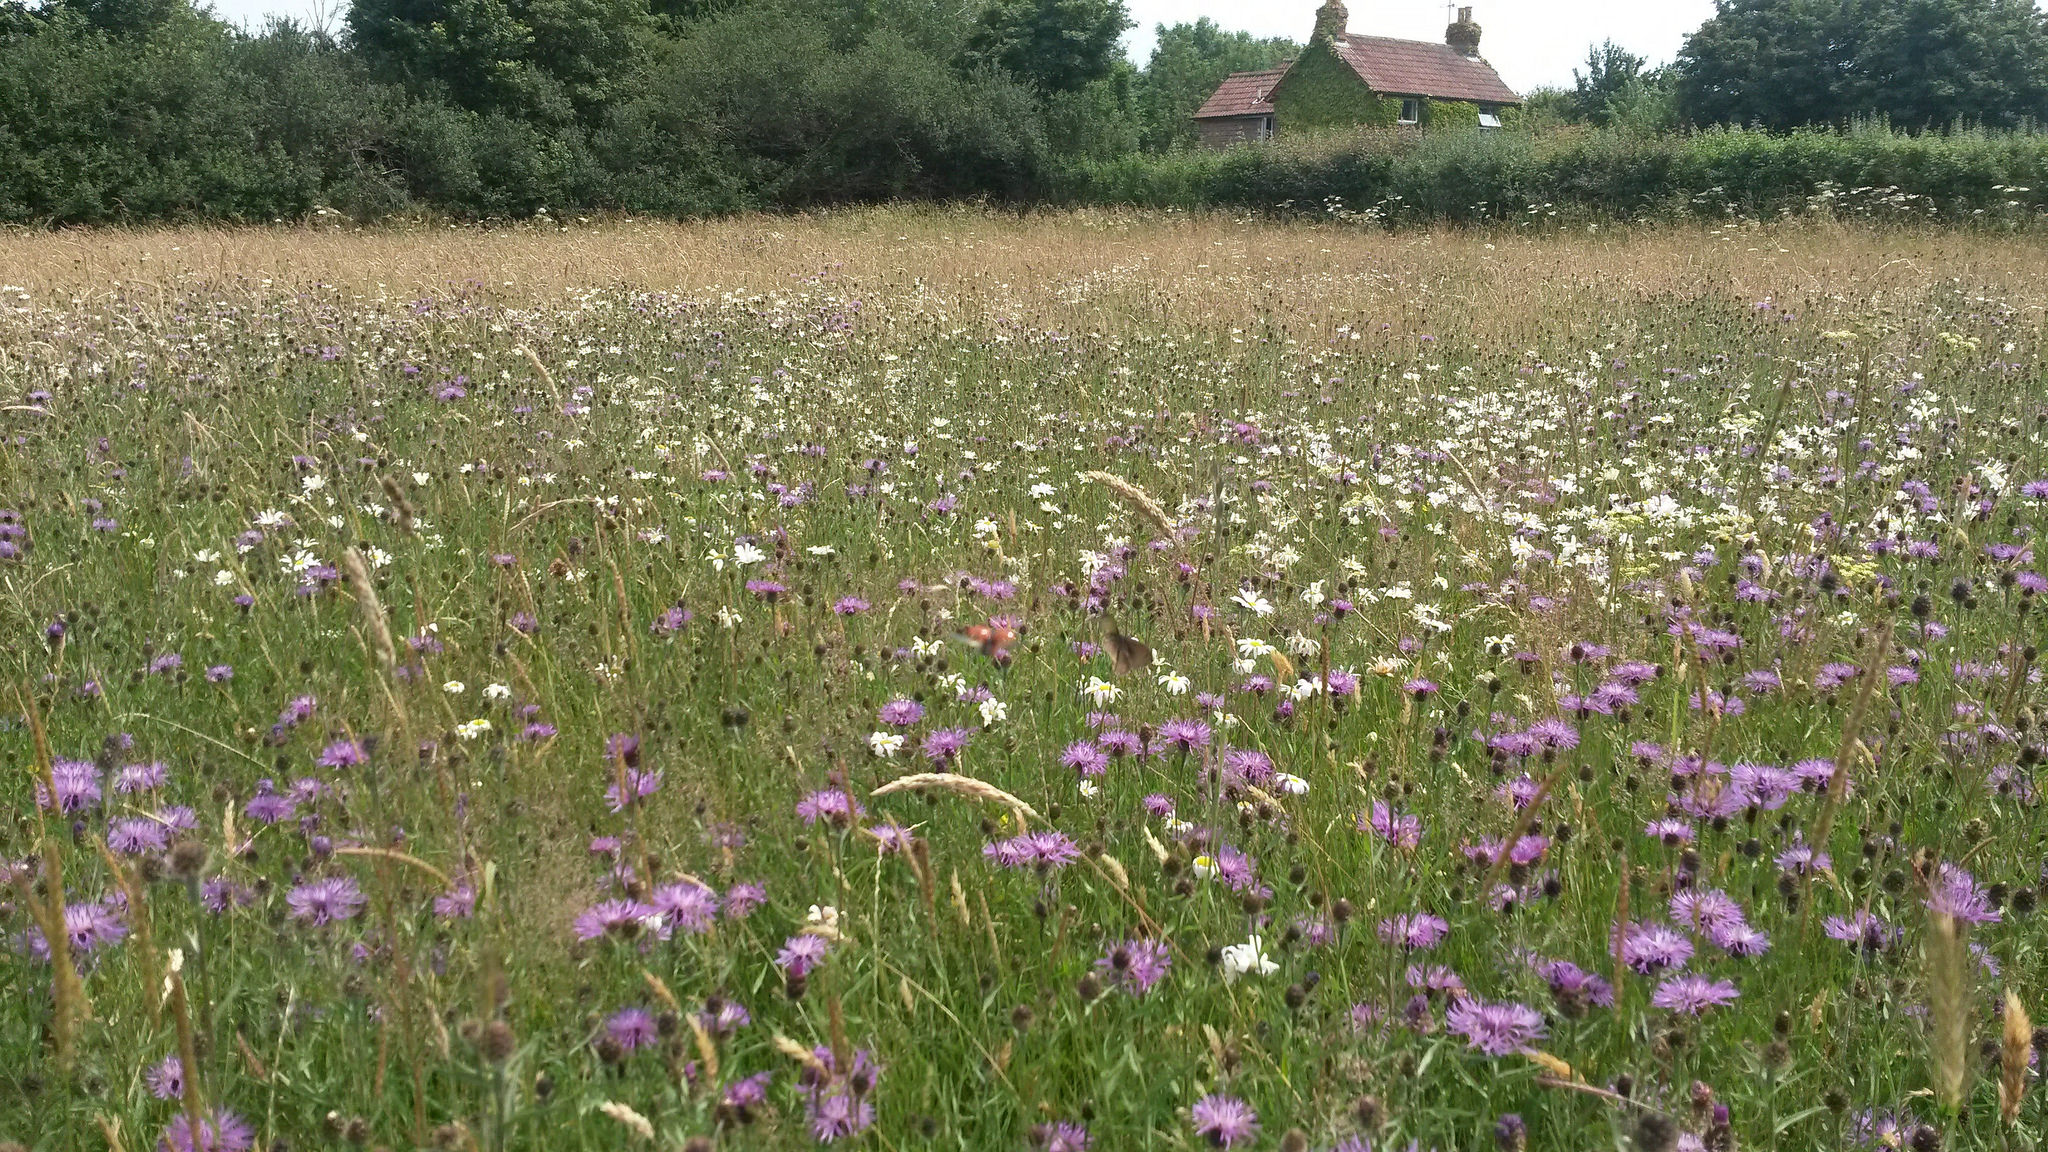 Restoring species rich meadows